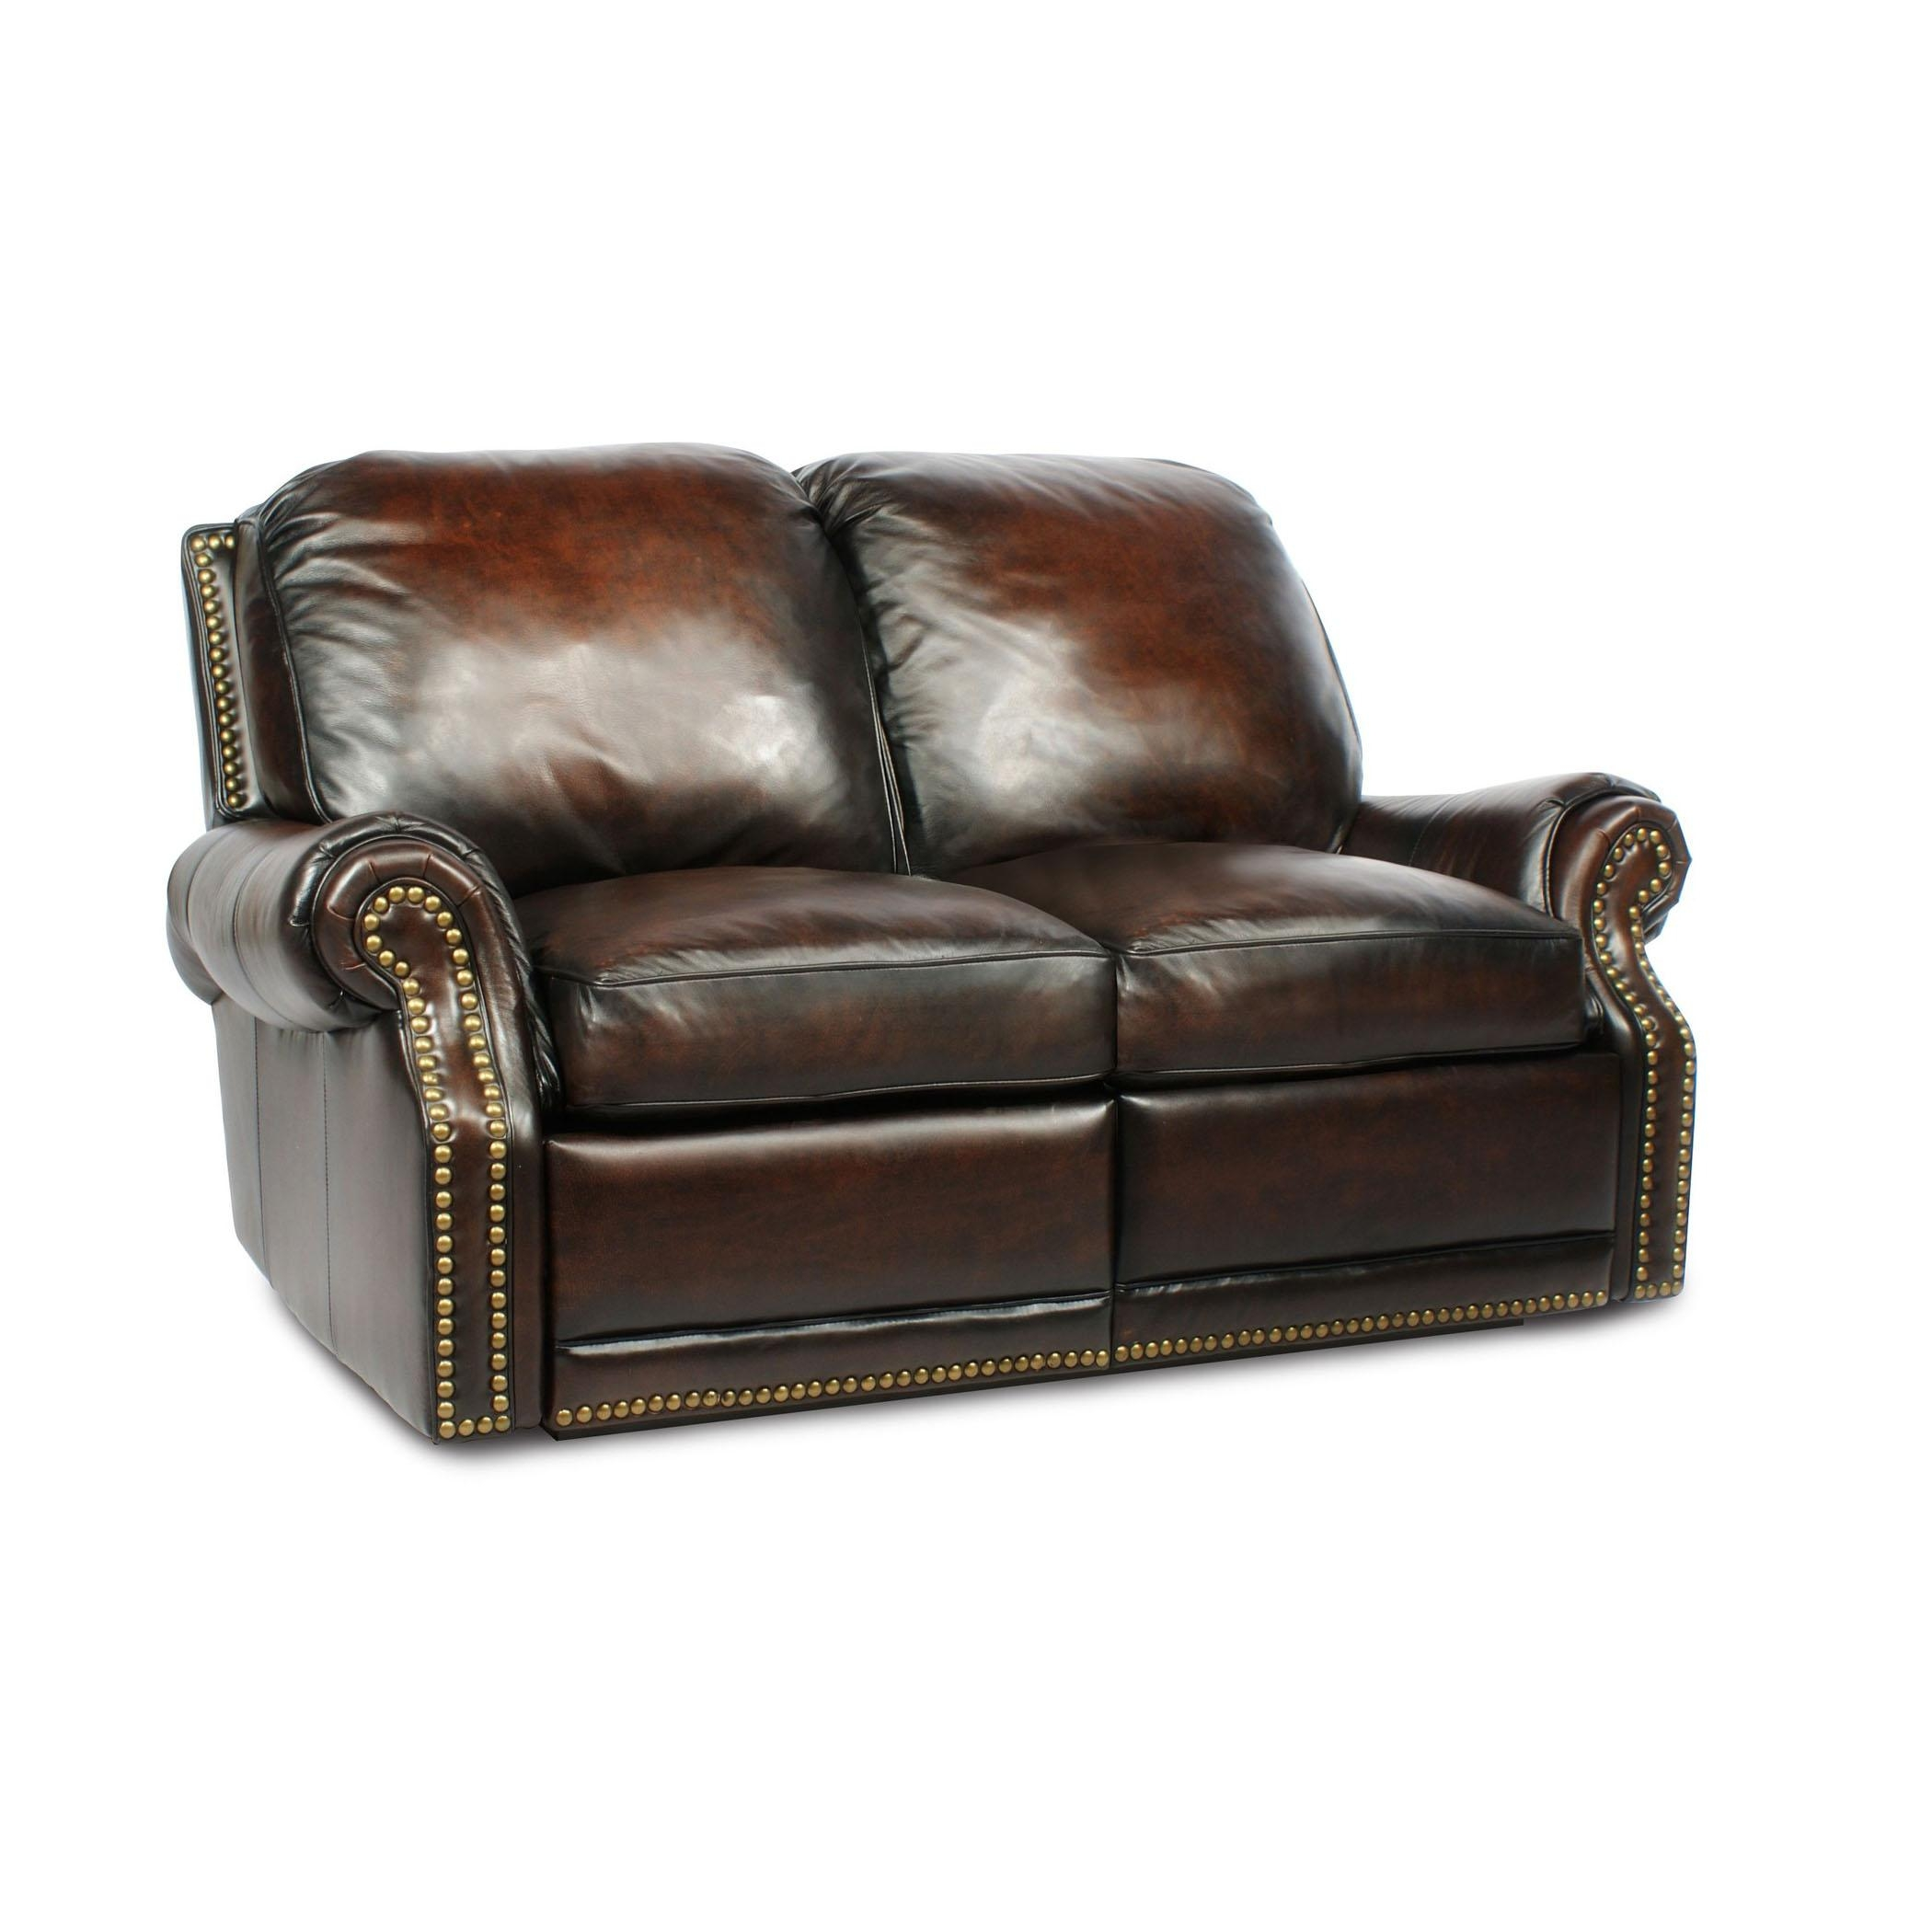 Barcalounger Premier Ii Leather 2 Seat Loveseat Sofa – Leather 2 For 2 Seater Recliner Leather Sofas (Image 2 of 20)